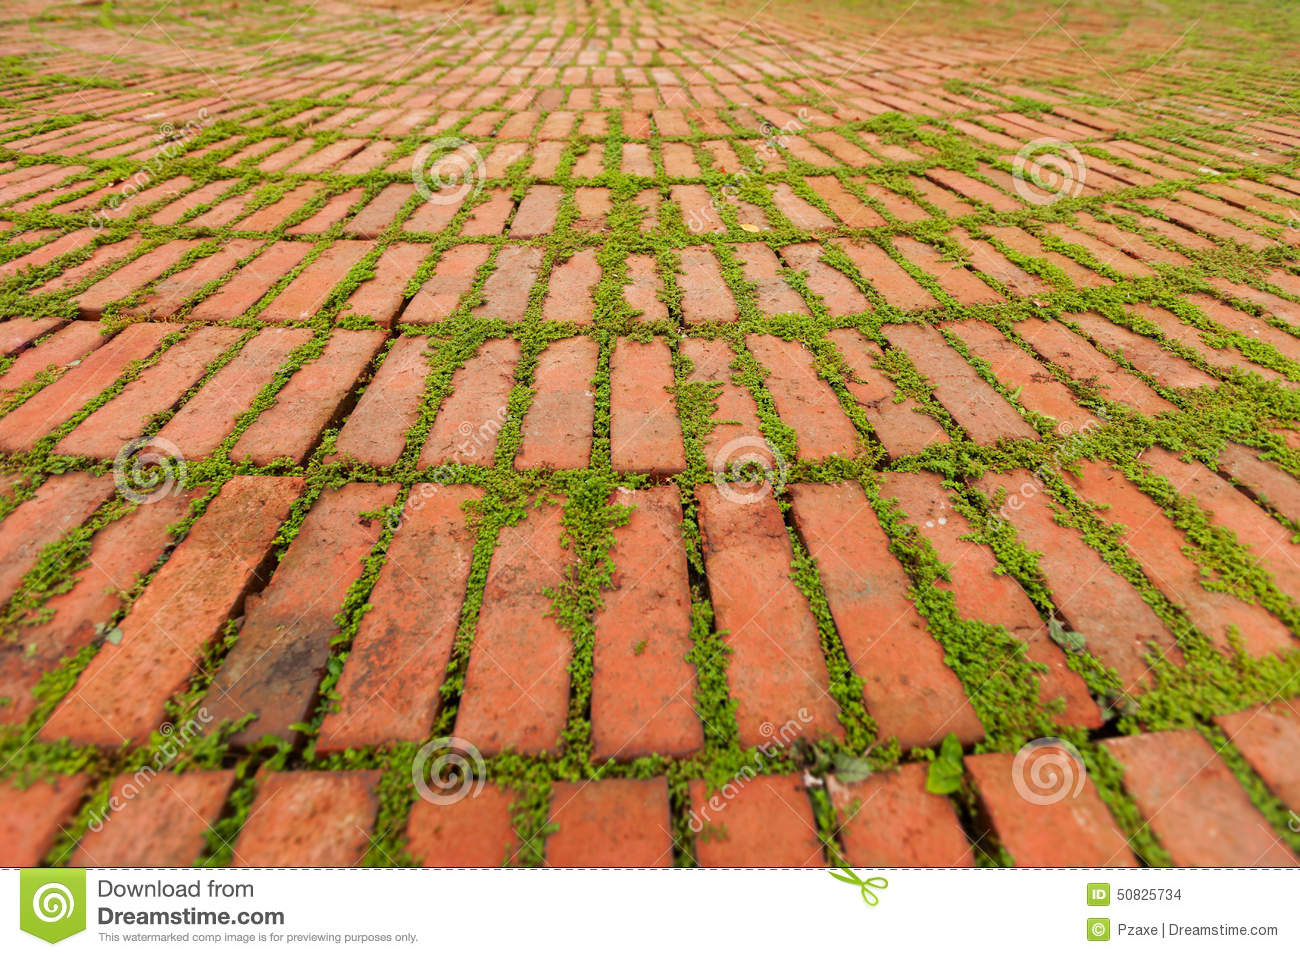 Brick Pavers Outlined By Green Plants Growing Between